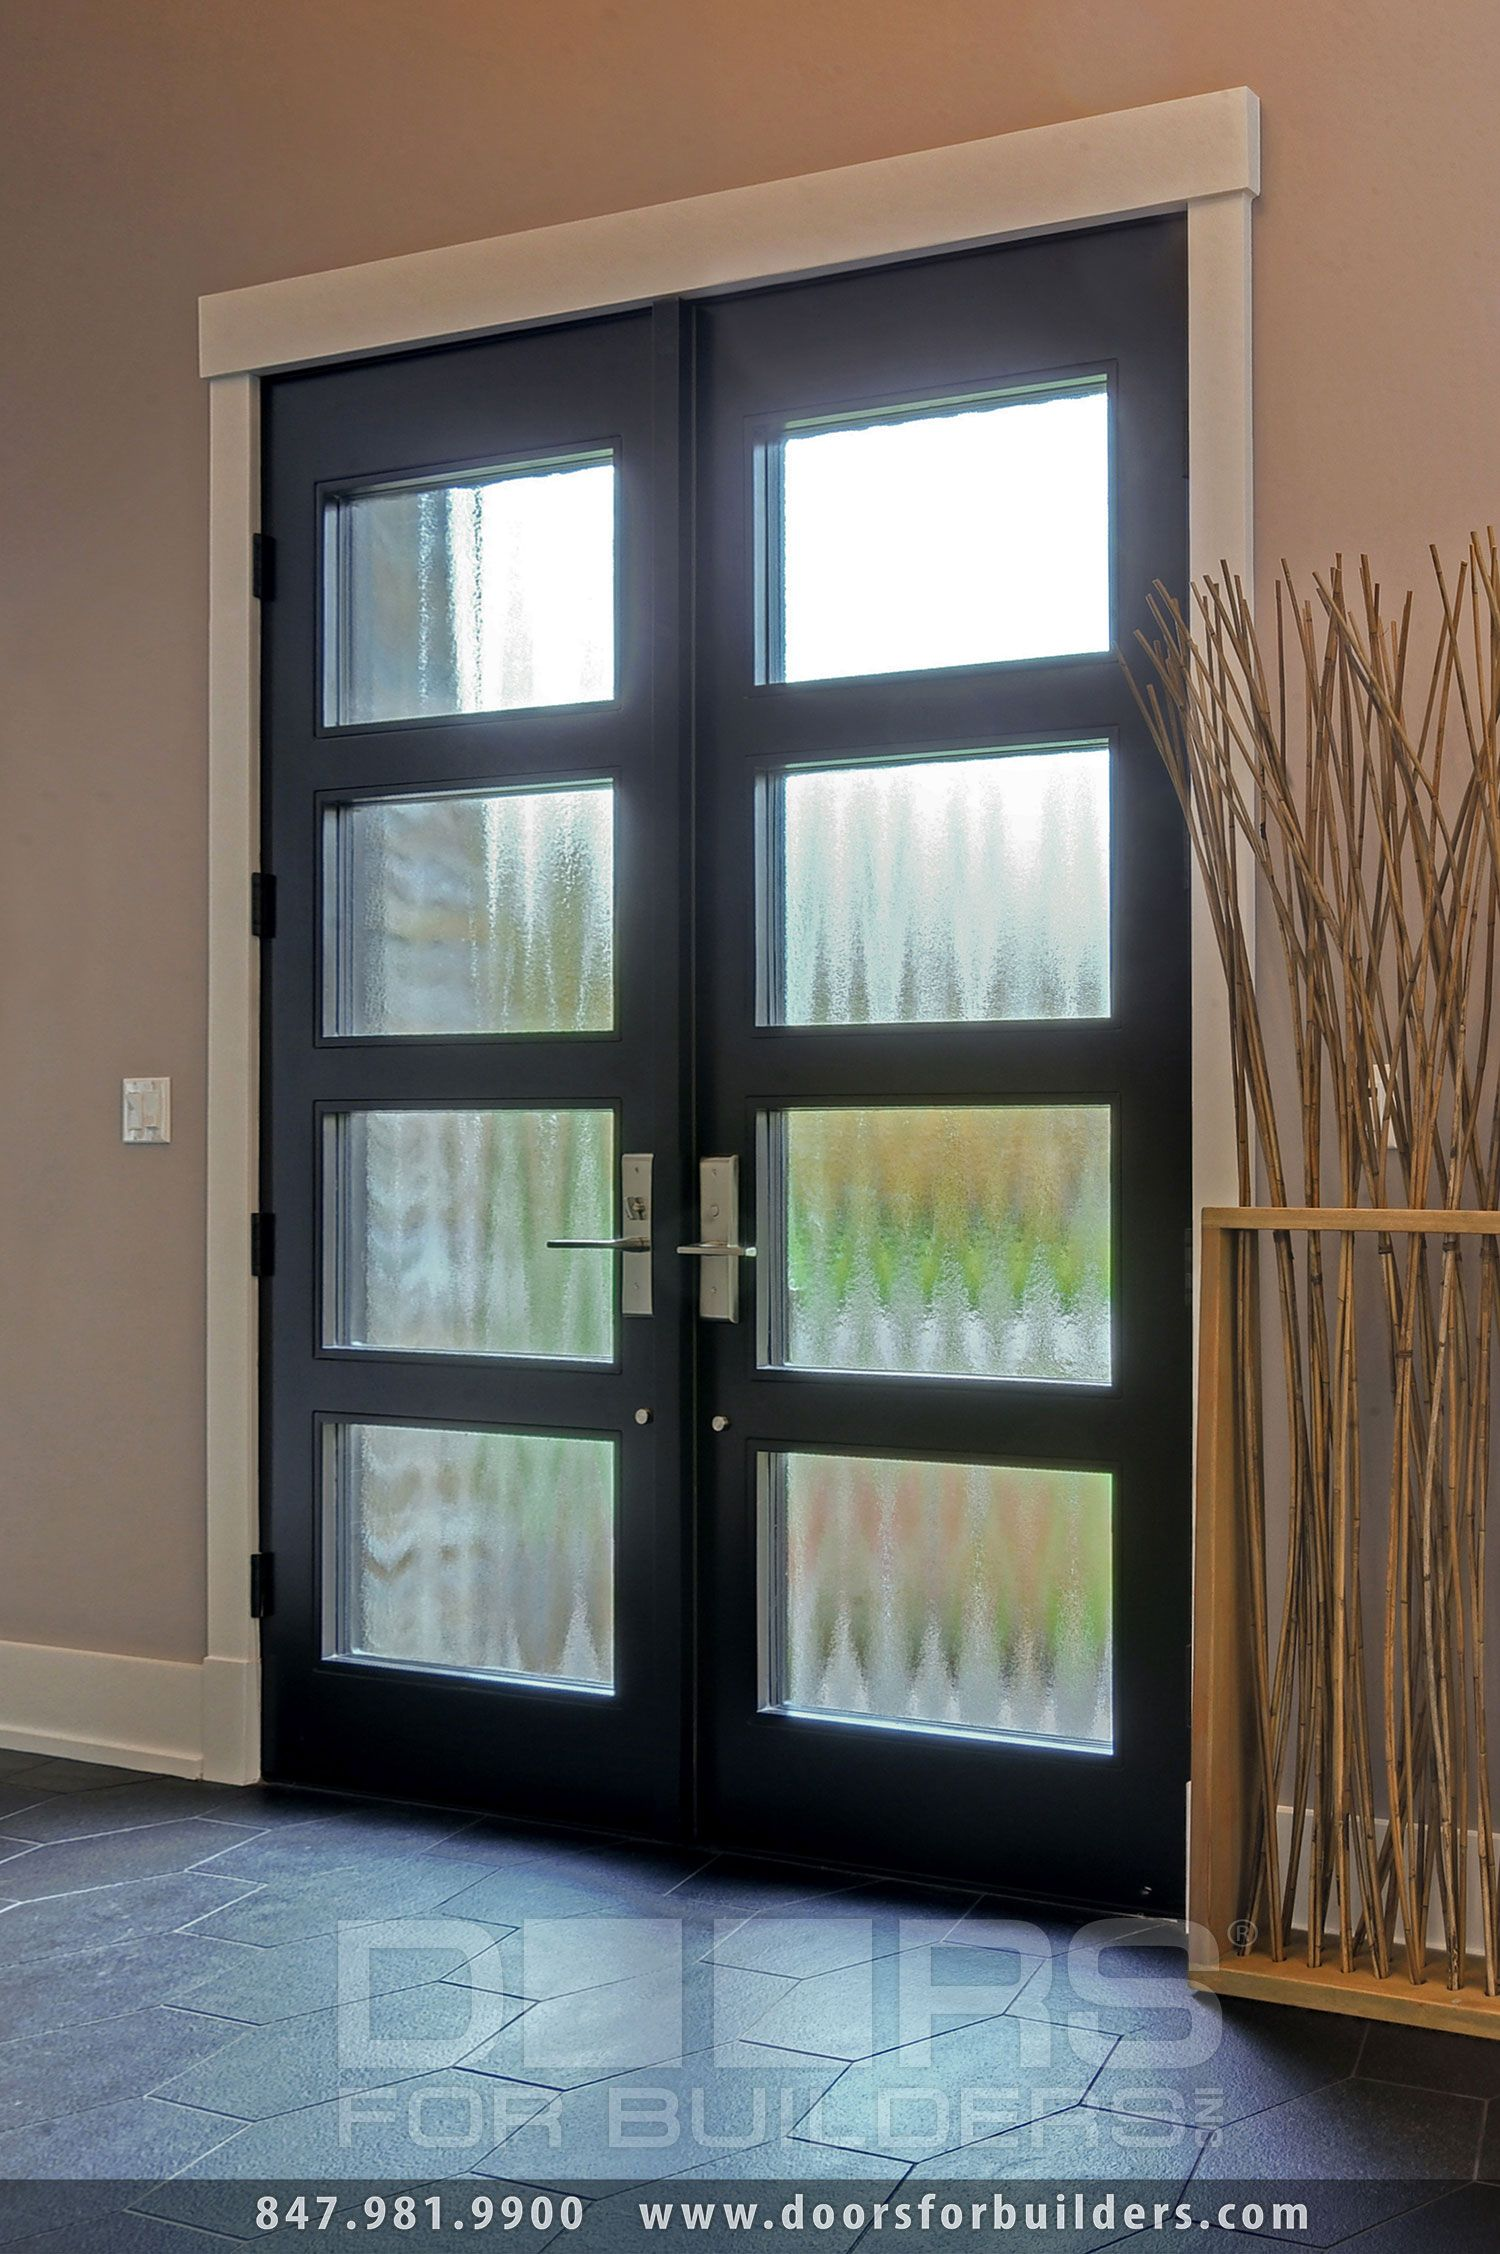 Exterior Wood Entry Doors : Wood entry doors from for builders inc solid